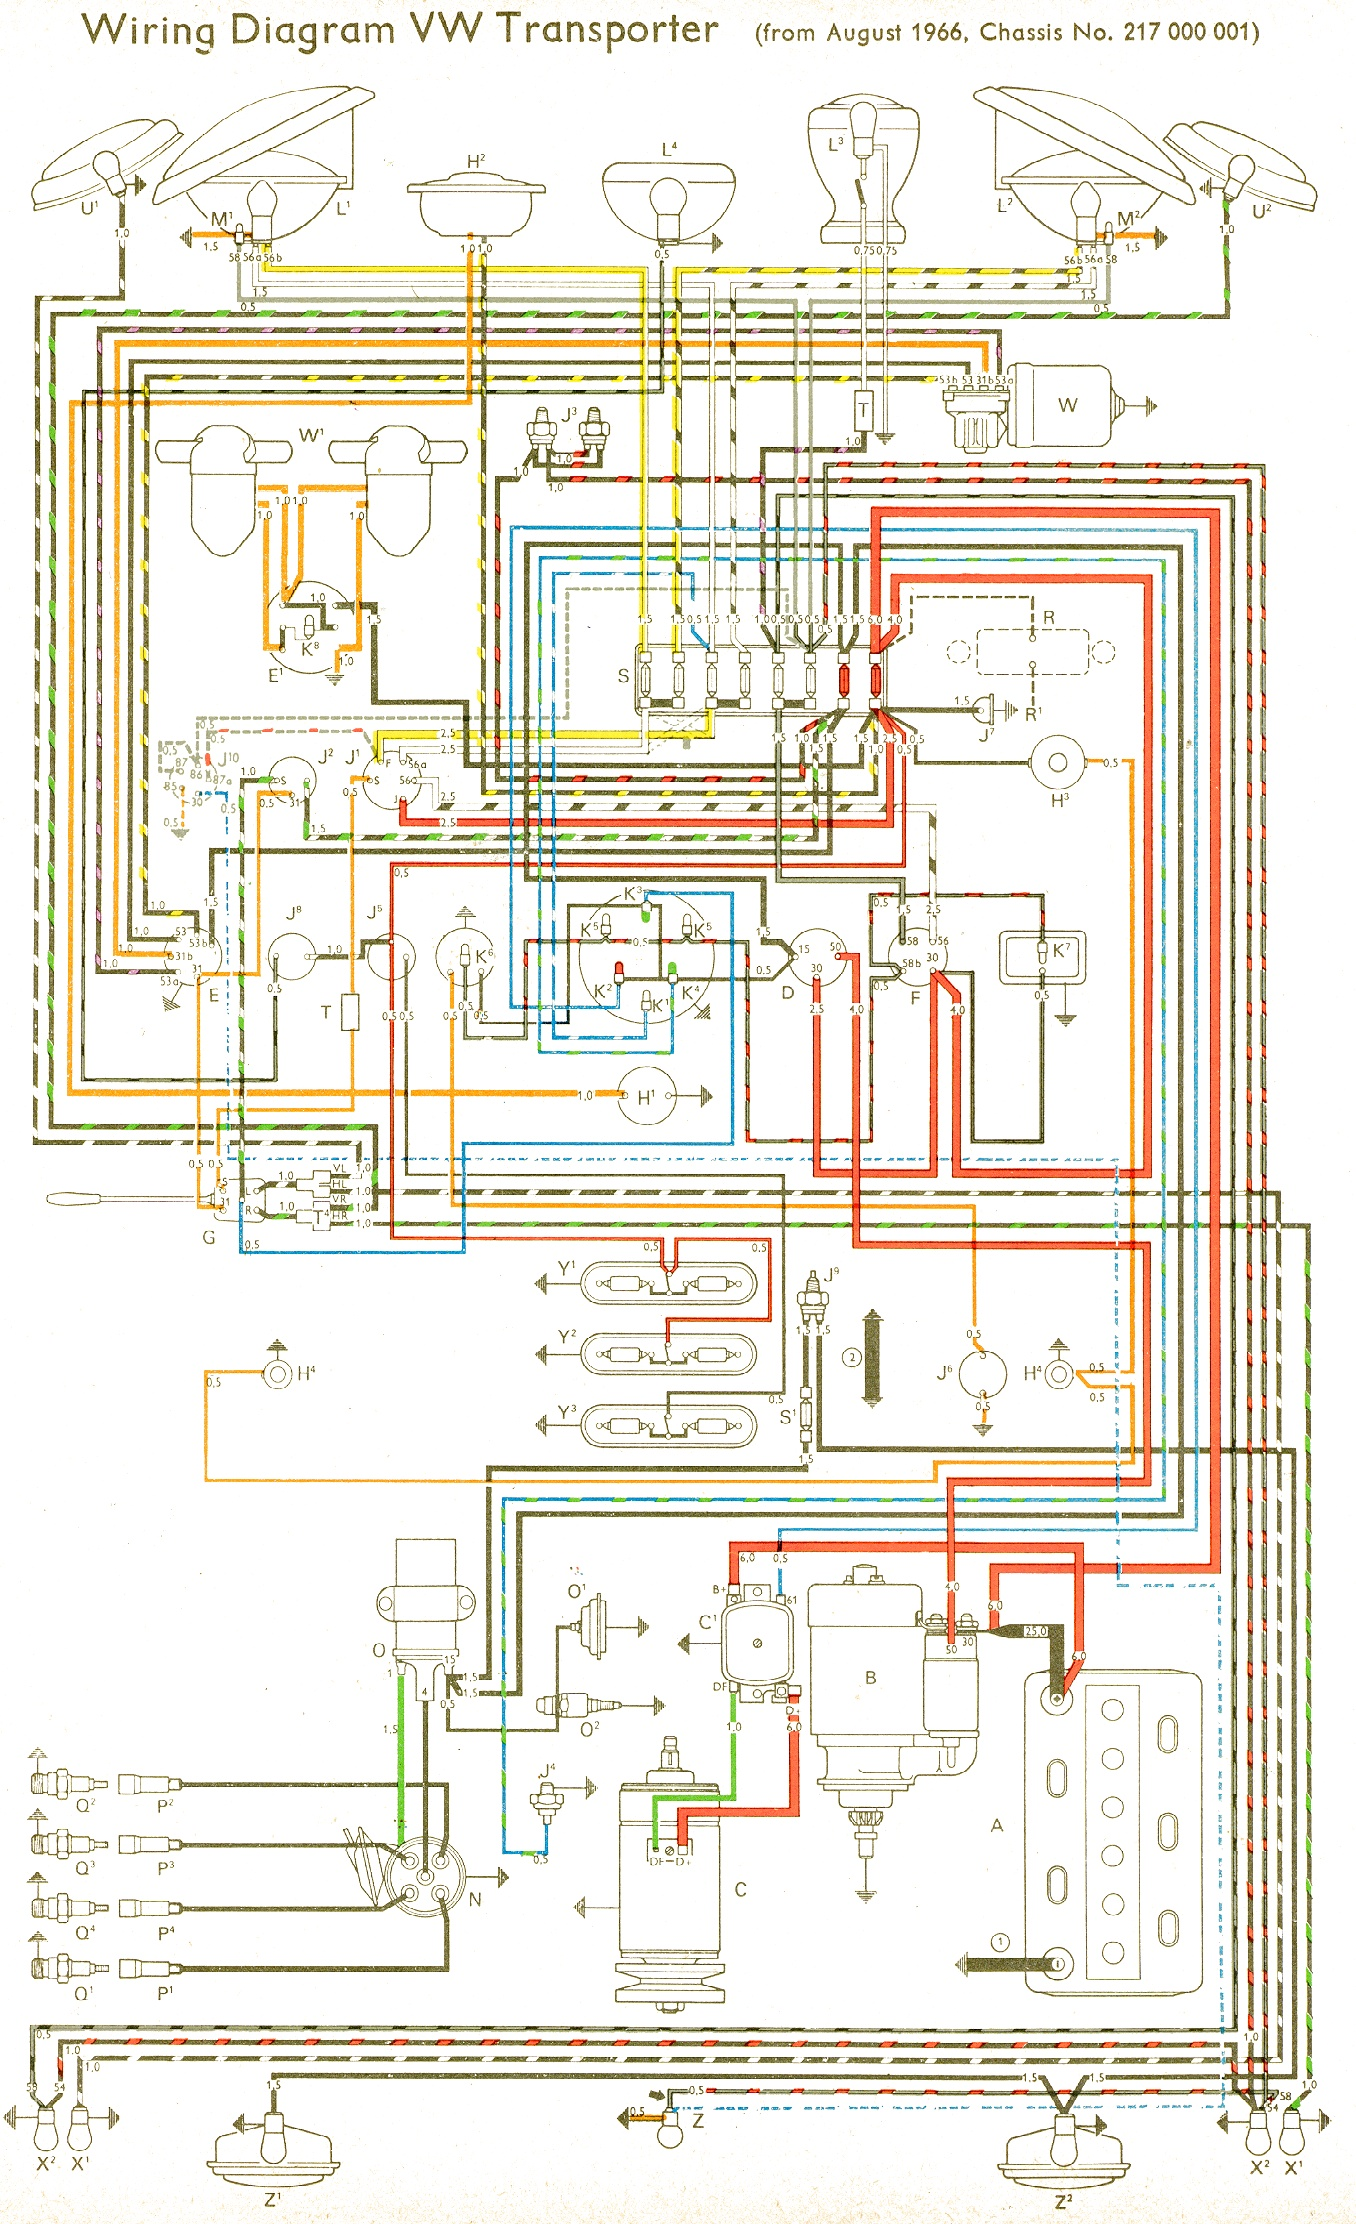 VintageBus.Com - VW Bus (and other) Wiring Diagrams on internet of things diagrams, electrical diagrams, troubleshooting diagrams, snatch block diagrams, engine diagrams, honda motorcycle repair diagrams, battery diagrams, gmc fuse box diagrams, motor diagrams, hvac diagrams, led circuit diagrams, electronic circuit diagrams, pinout diagrams, lighting diagrams, transformer diagrams, smart car diagrams, friendship bracelet diagrams, series and parallel circuits diagrams, switch diagrams, sincgars radio configurations diagrams,